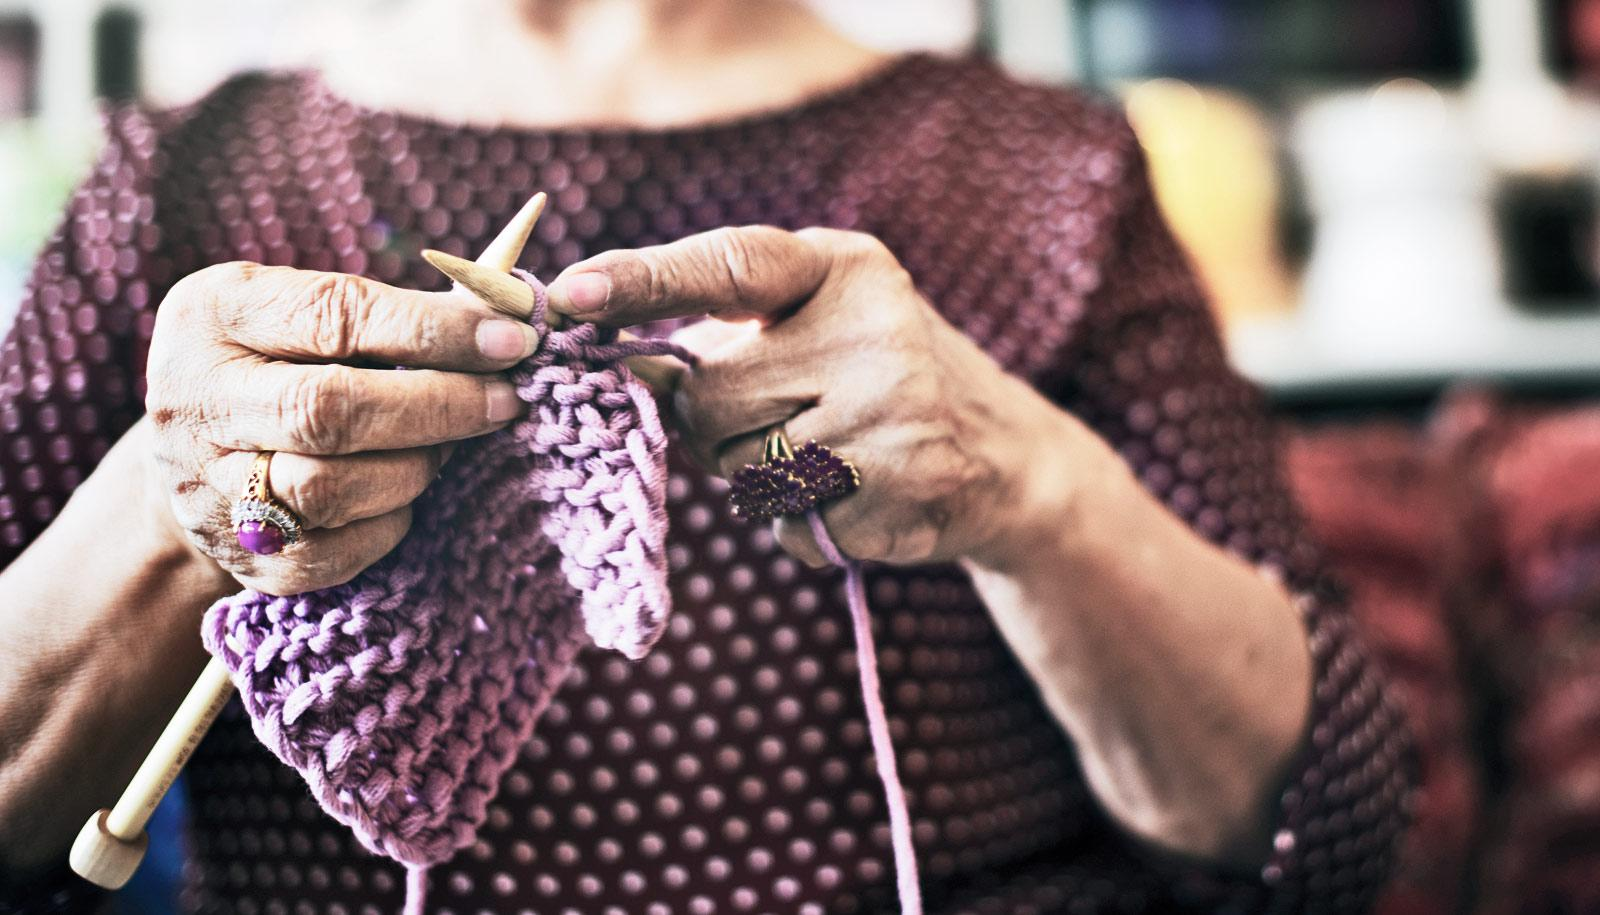 hands of elderly person knitting